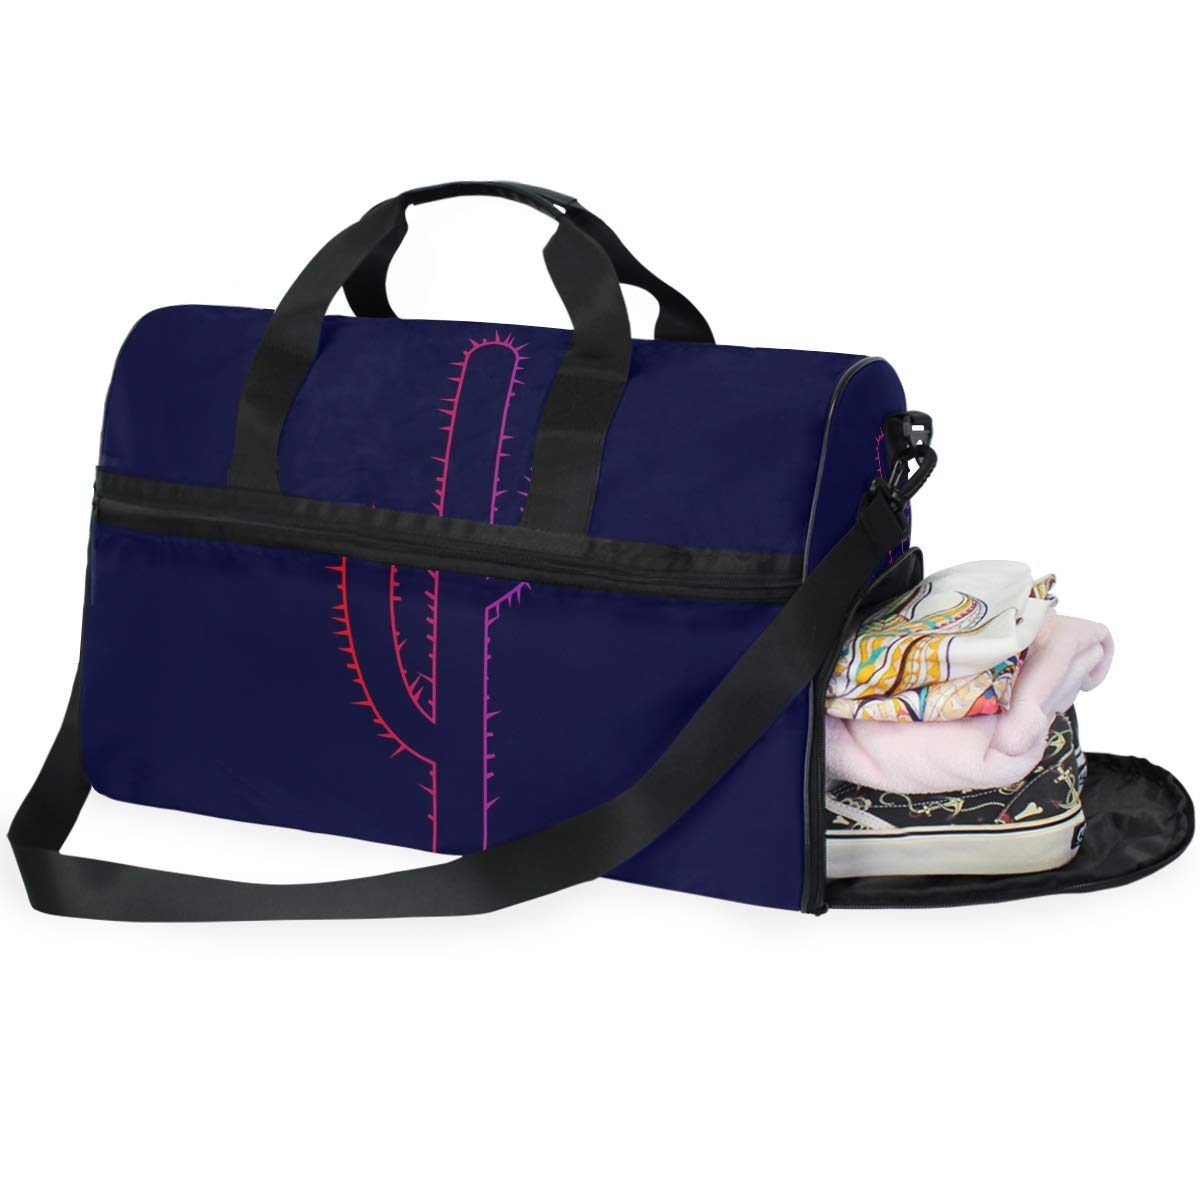 Purple Background Cactus Flash Large Travel Duffel Bag For Women Men Overnight Weekend Lightweight Luggage Bag